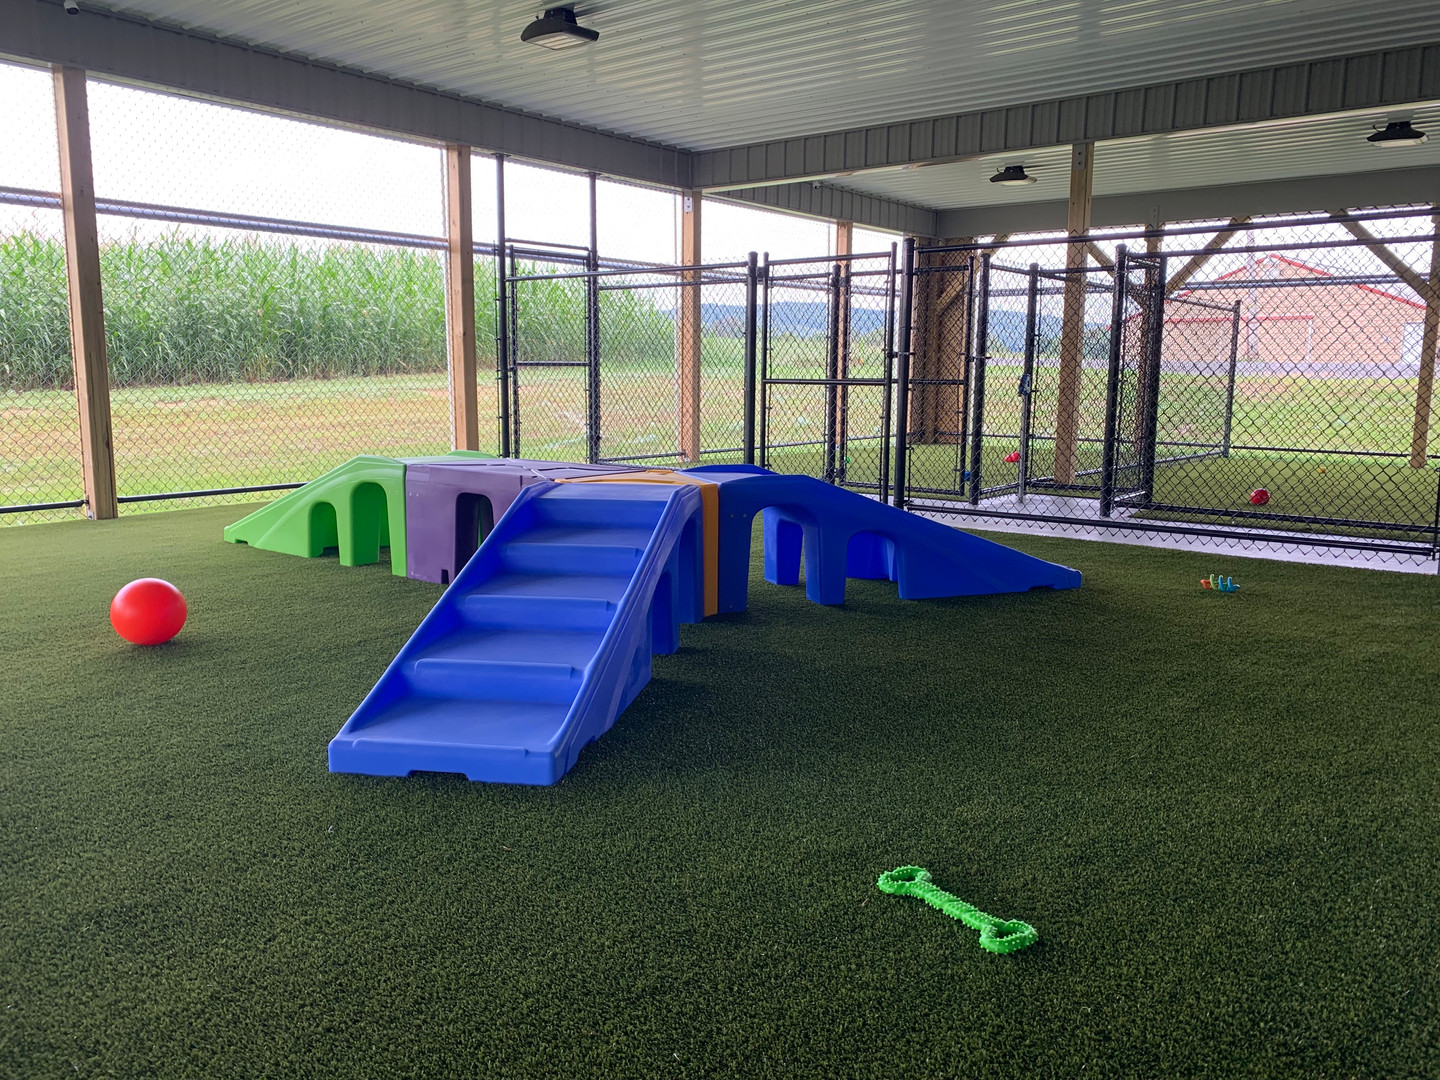 K9 Playground in our Outdoor Daycare Space